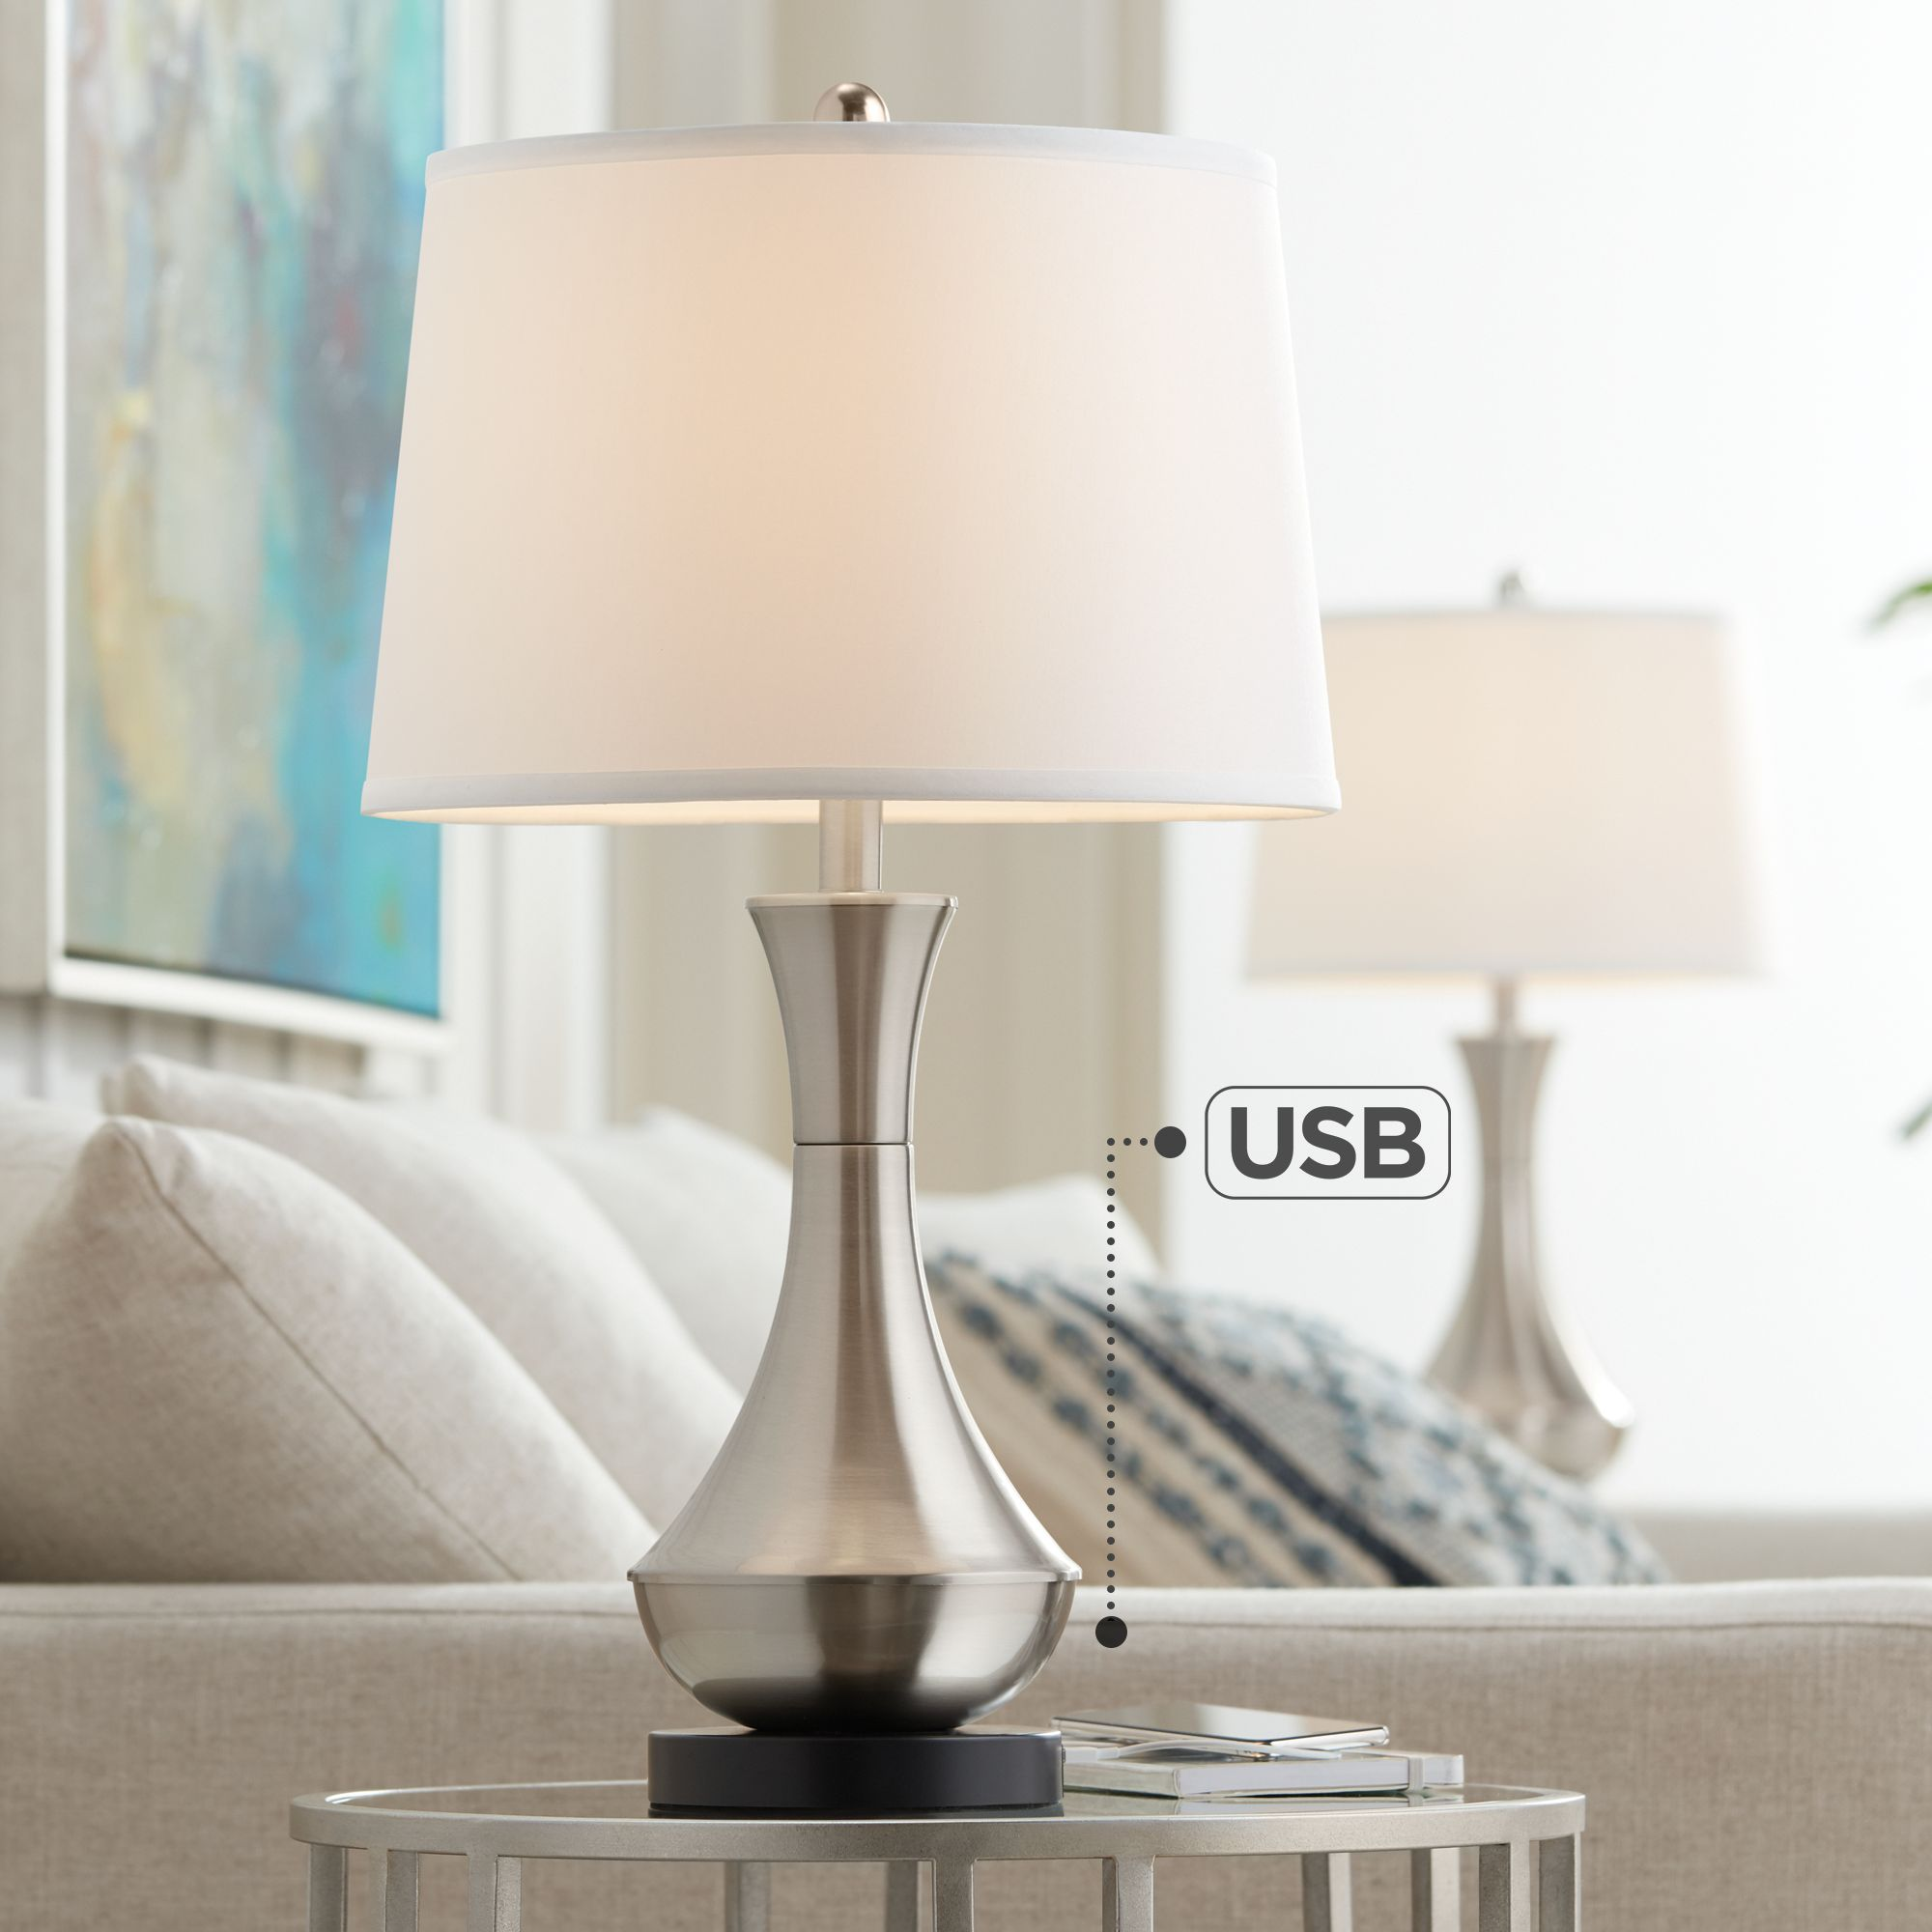 Simon Brushed Steel USB Table Lamp Set Of 2